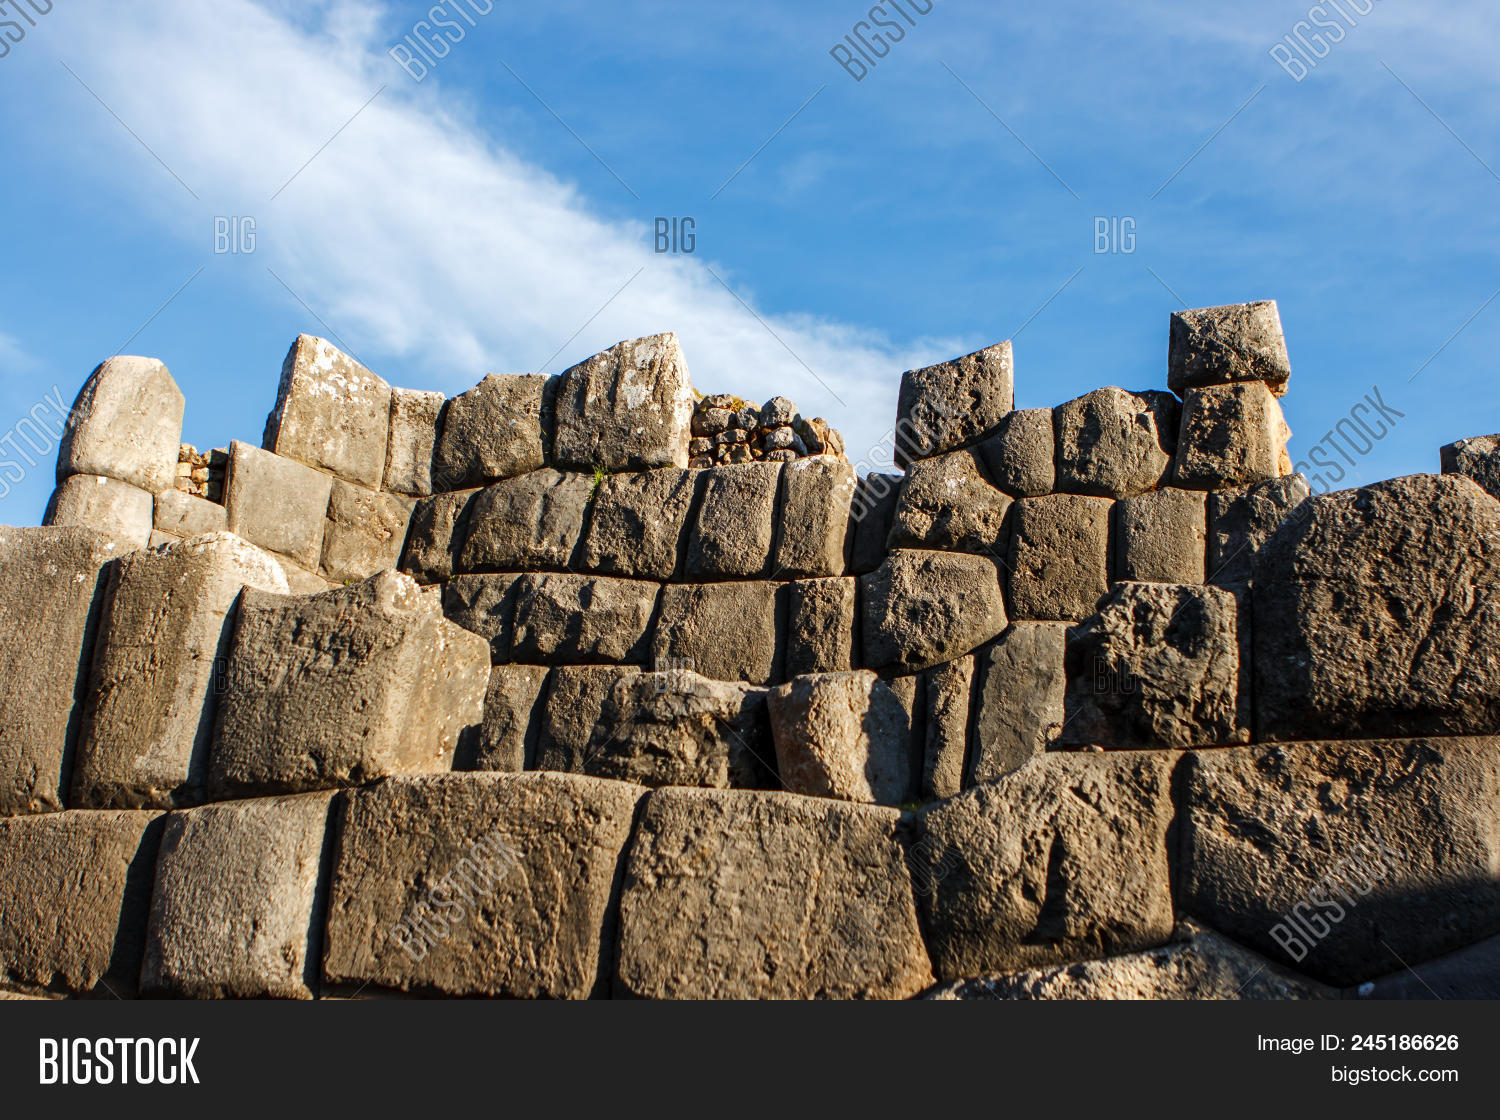 Pictrure of a stone wall at the Sacsayhuaman, Cusco, Peru